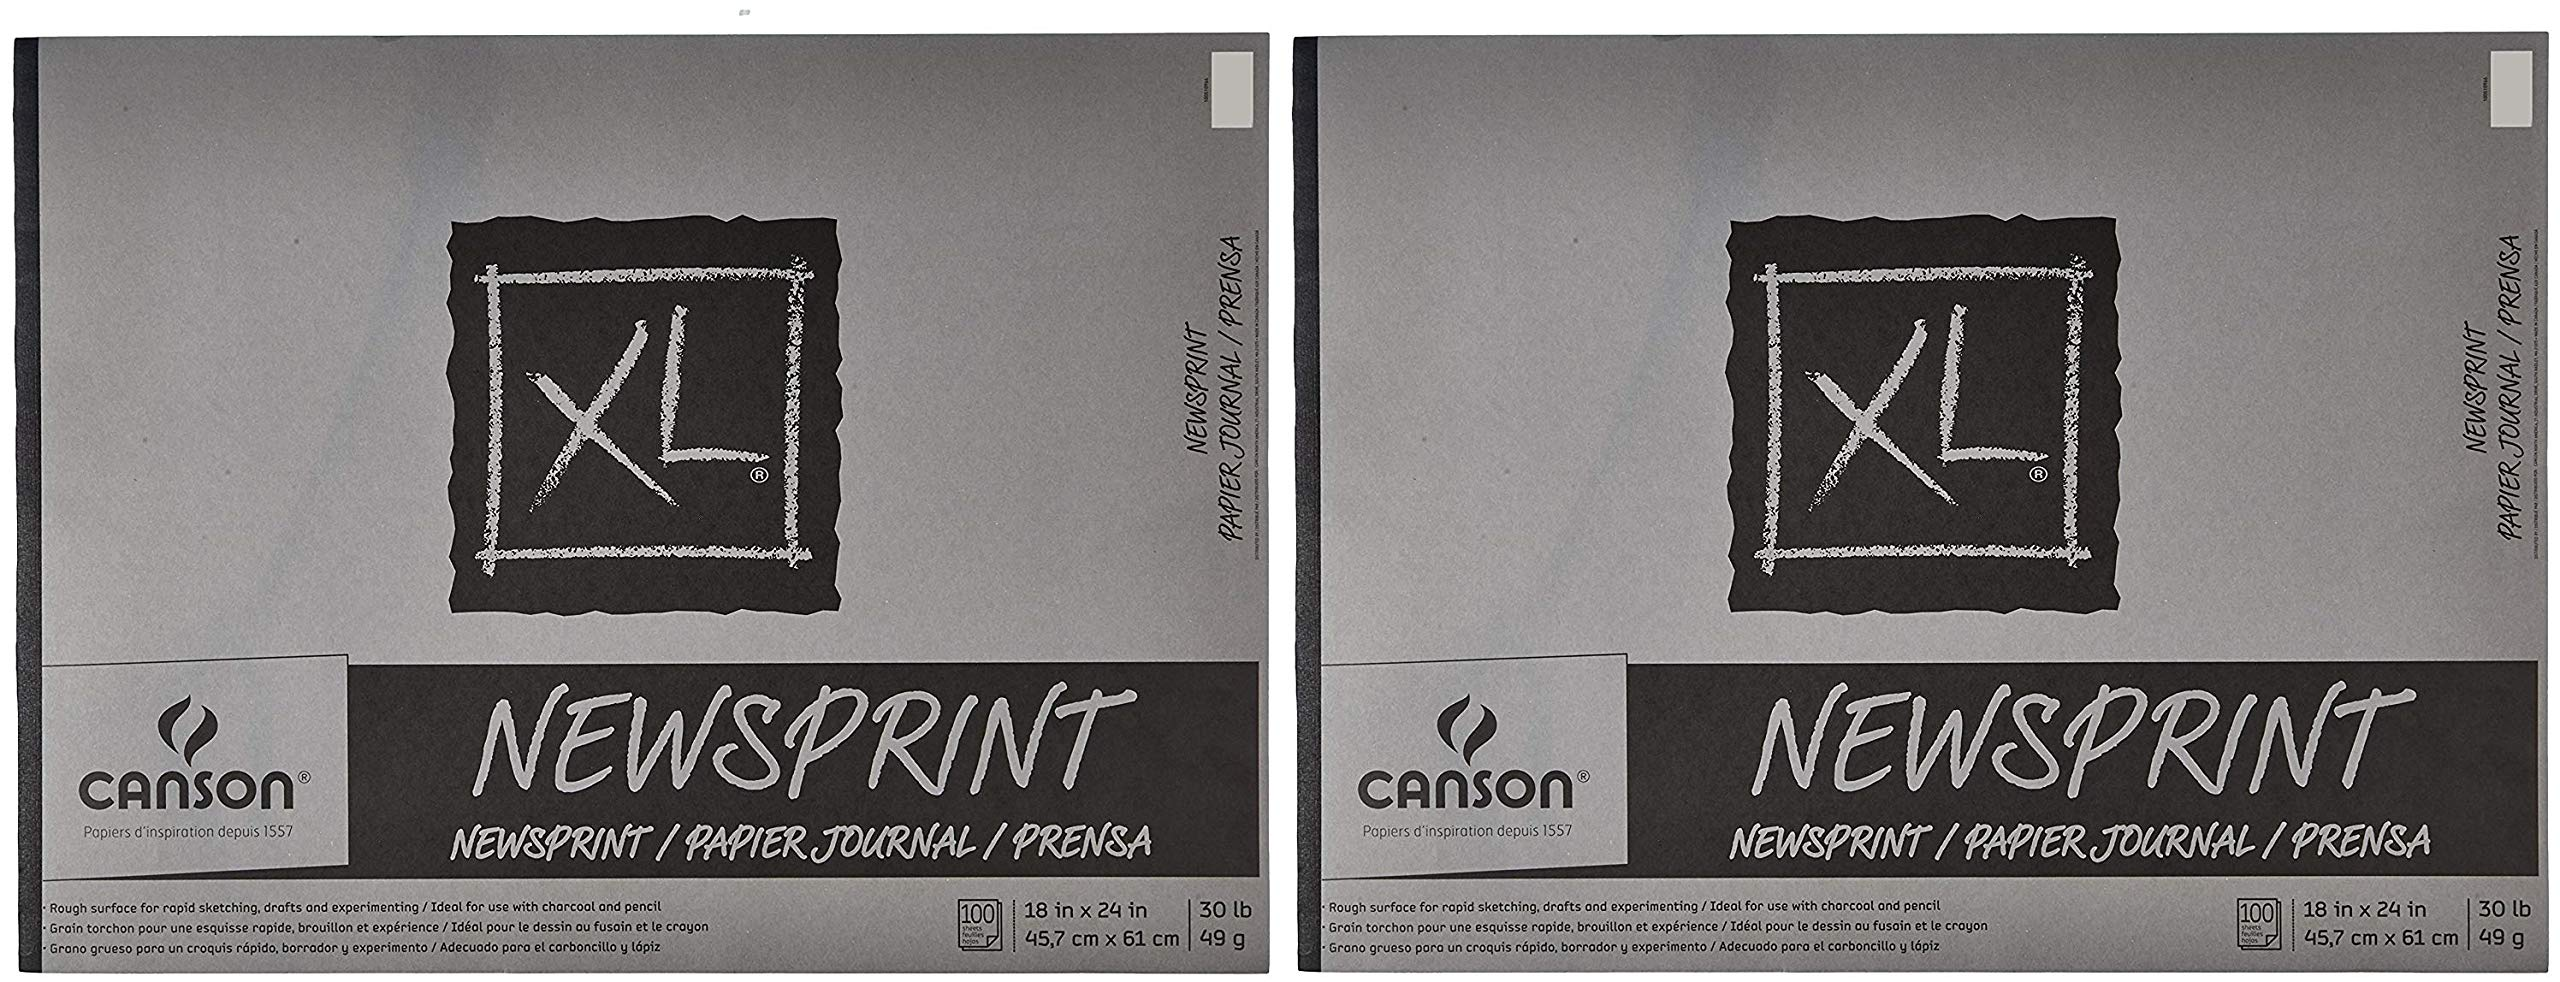 Canson Biggie Newsprint Pad - 18 x 24 Inches - 100 Sheet Pad (2-(Pack))